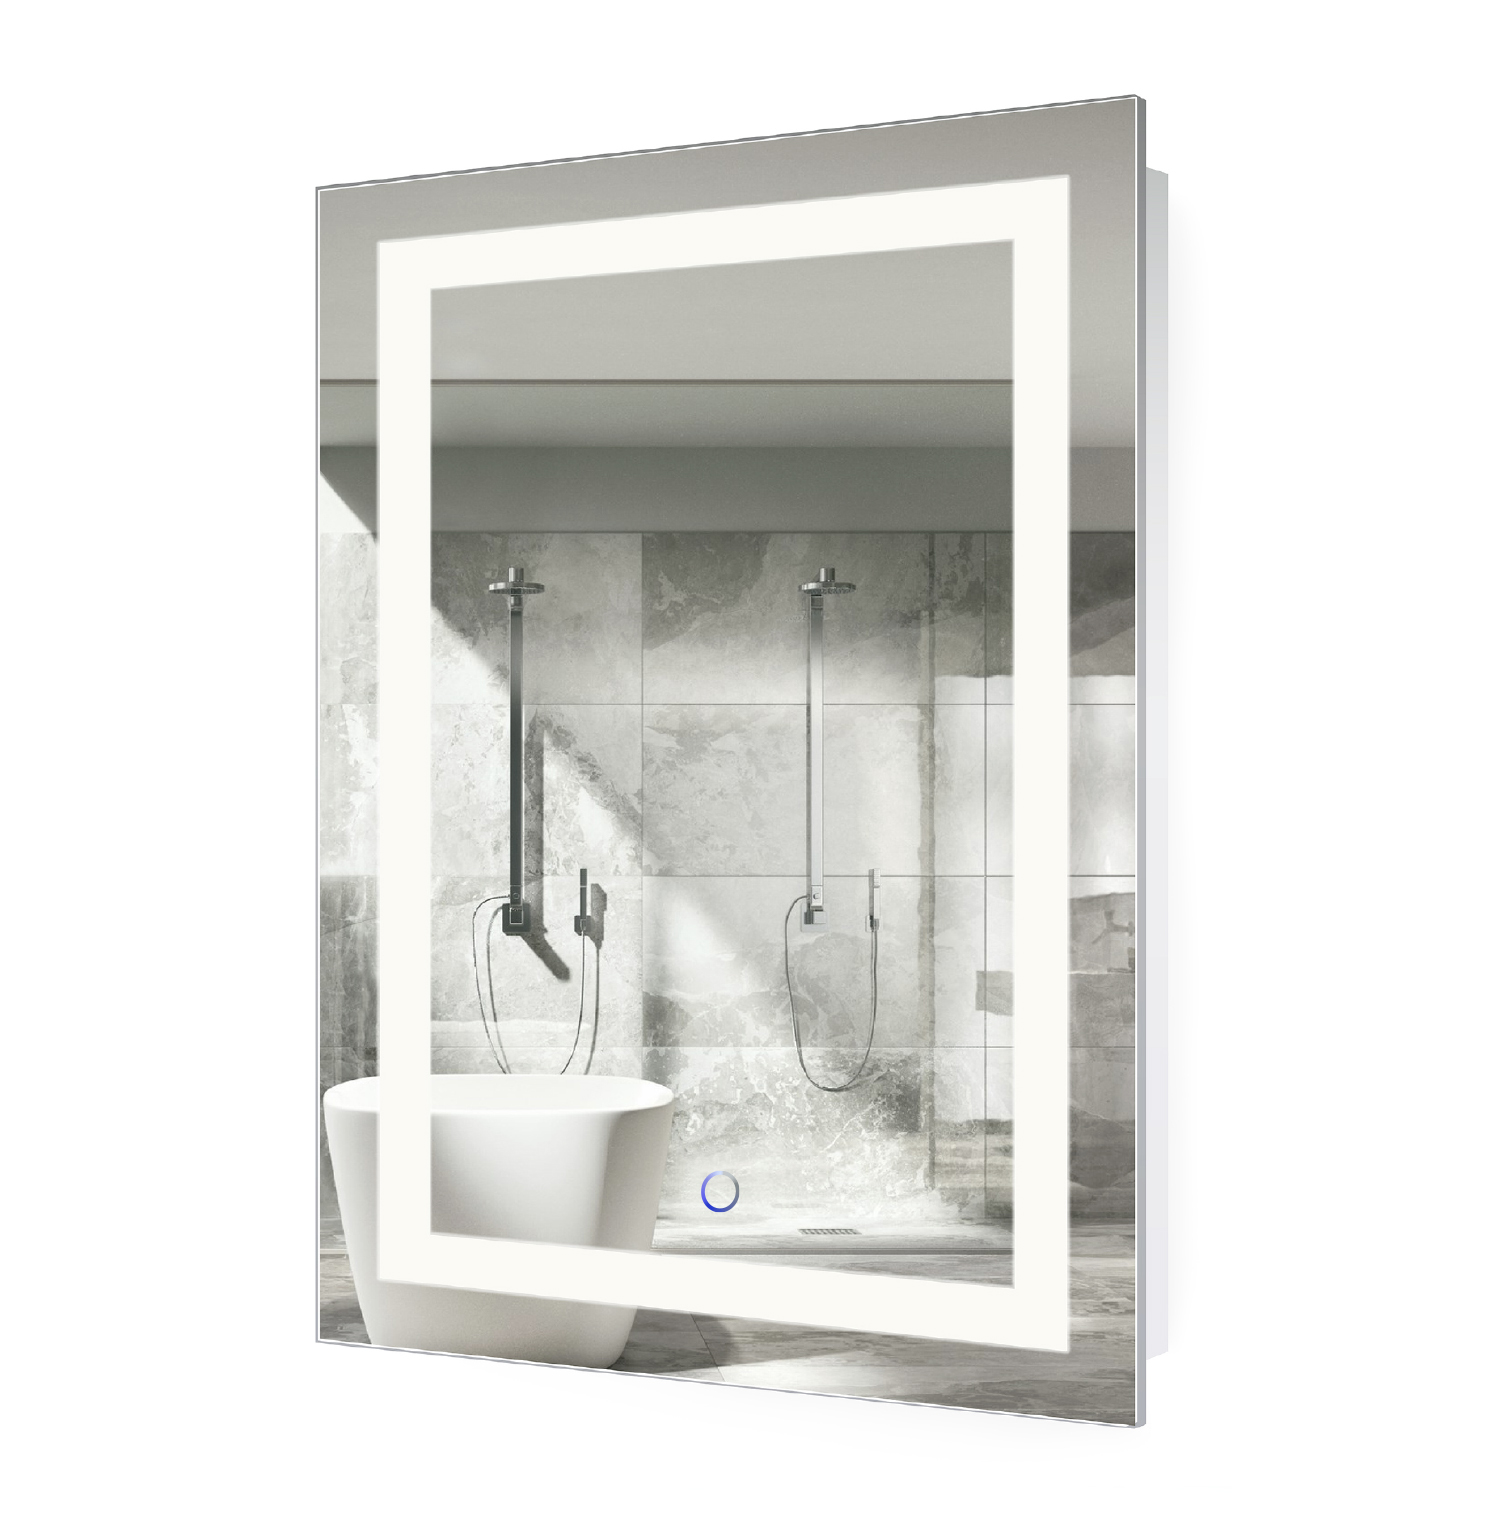 Lighted Bathroom Wall Mirror Large: LED Lighted 24″x36″ Bathroom Mirror With Dimmer & Defogger